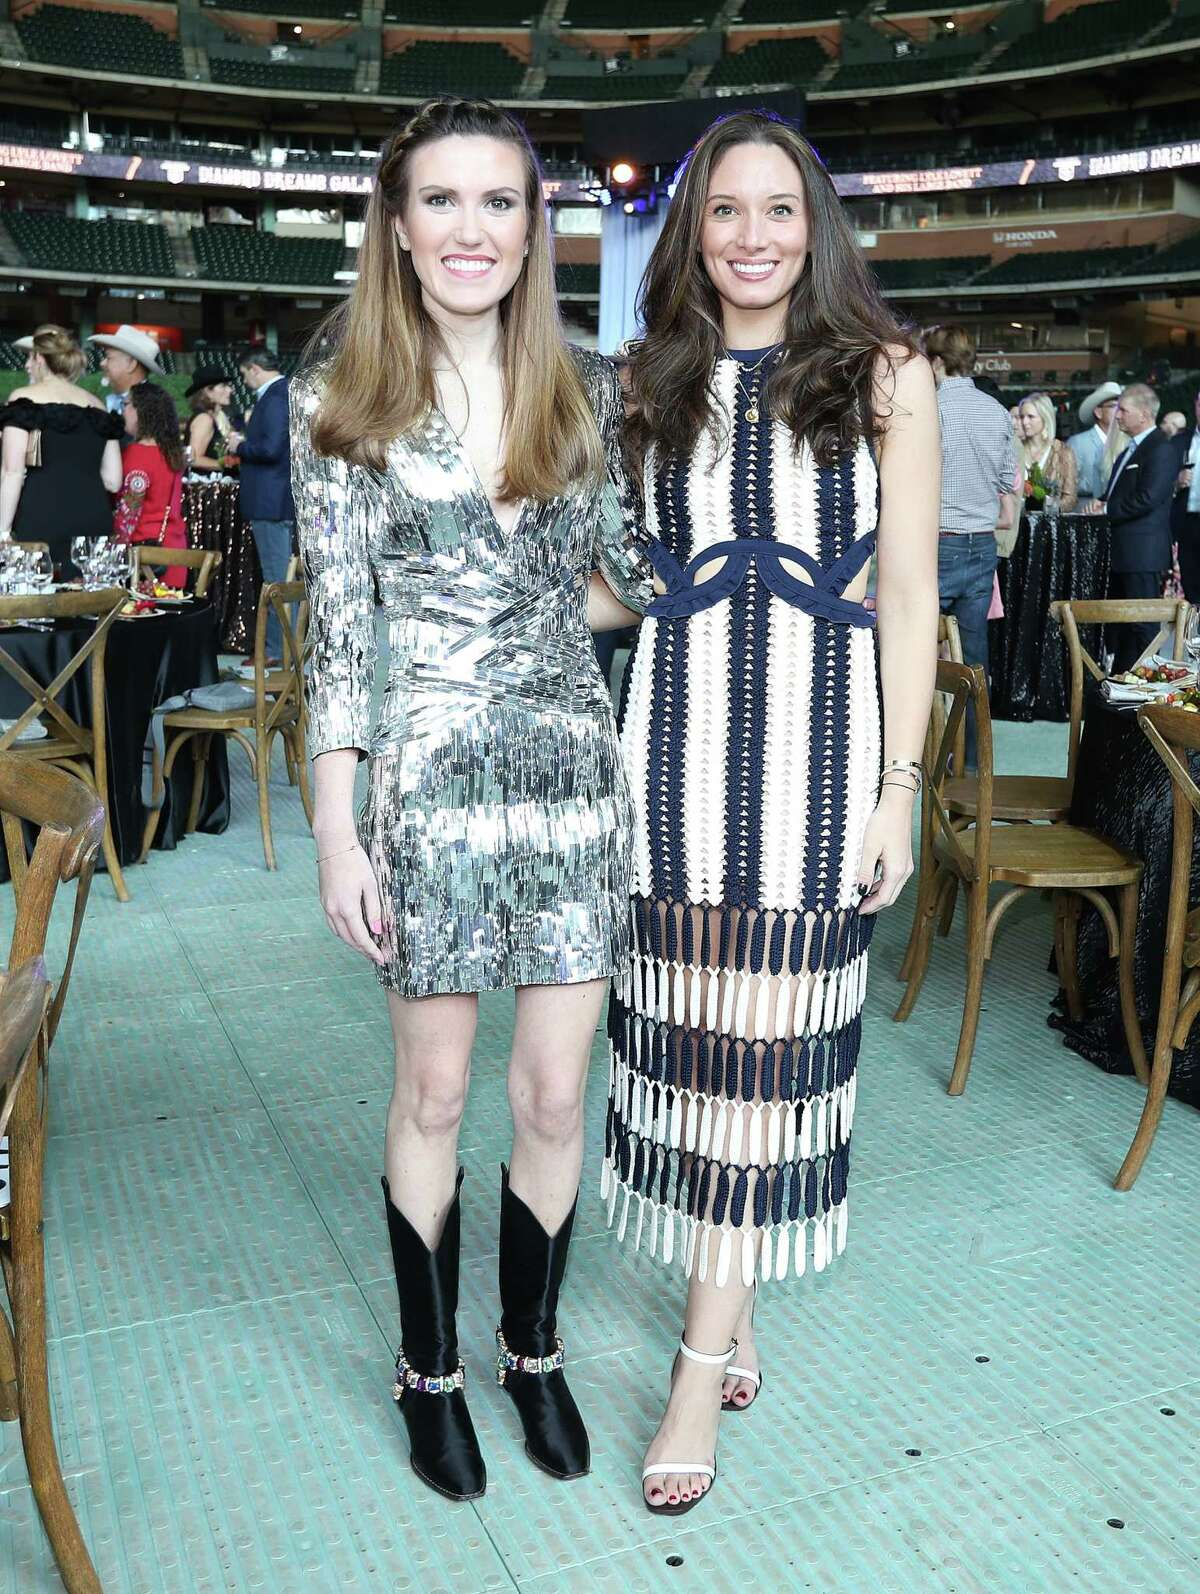 Heather Almond, left, and Kylie Bumgardner, right during the Astros Foundation's sixth annual Diamond Dreams Gala presented by Chevron, featuring singer-songwriter and Texas native Lyle Lovett and his Large Band on the field at Minute Maid Park, Thursday, September 9, 2021, in Houston.